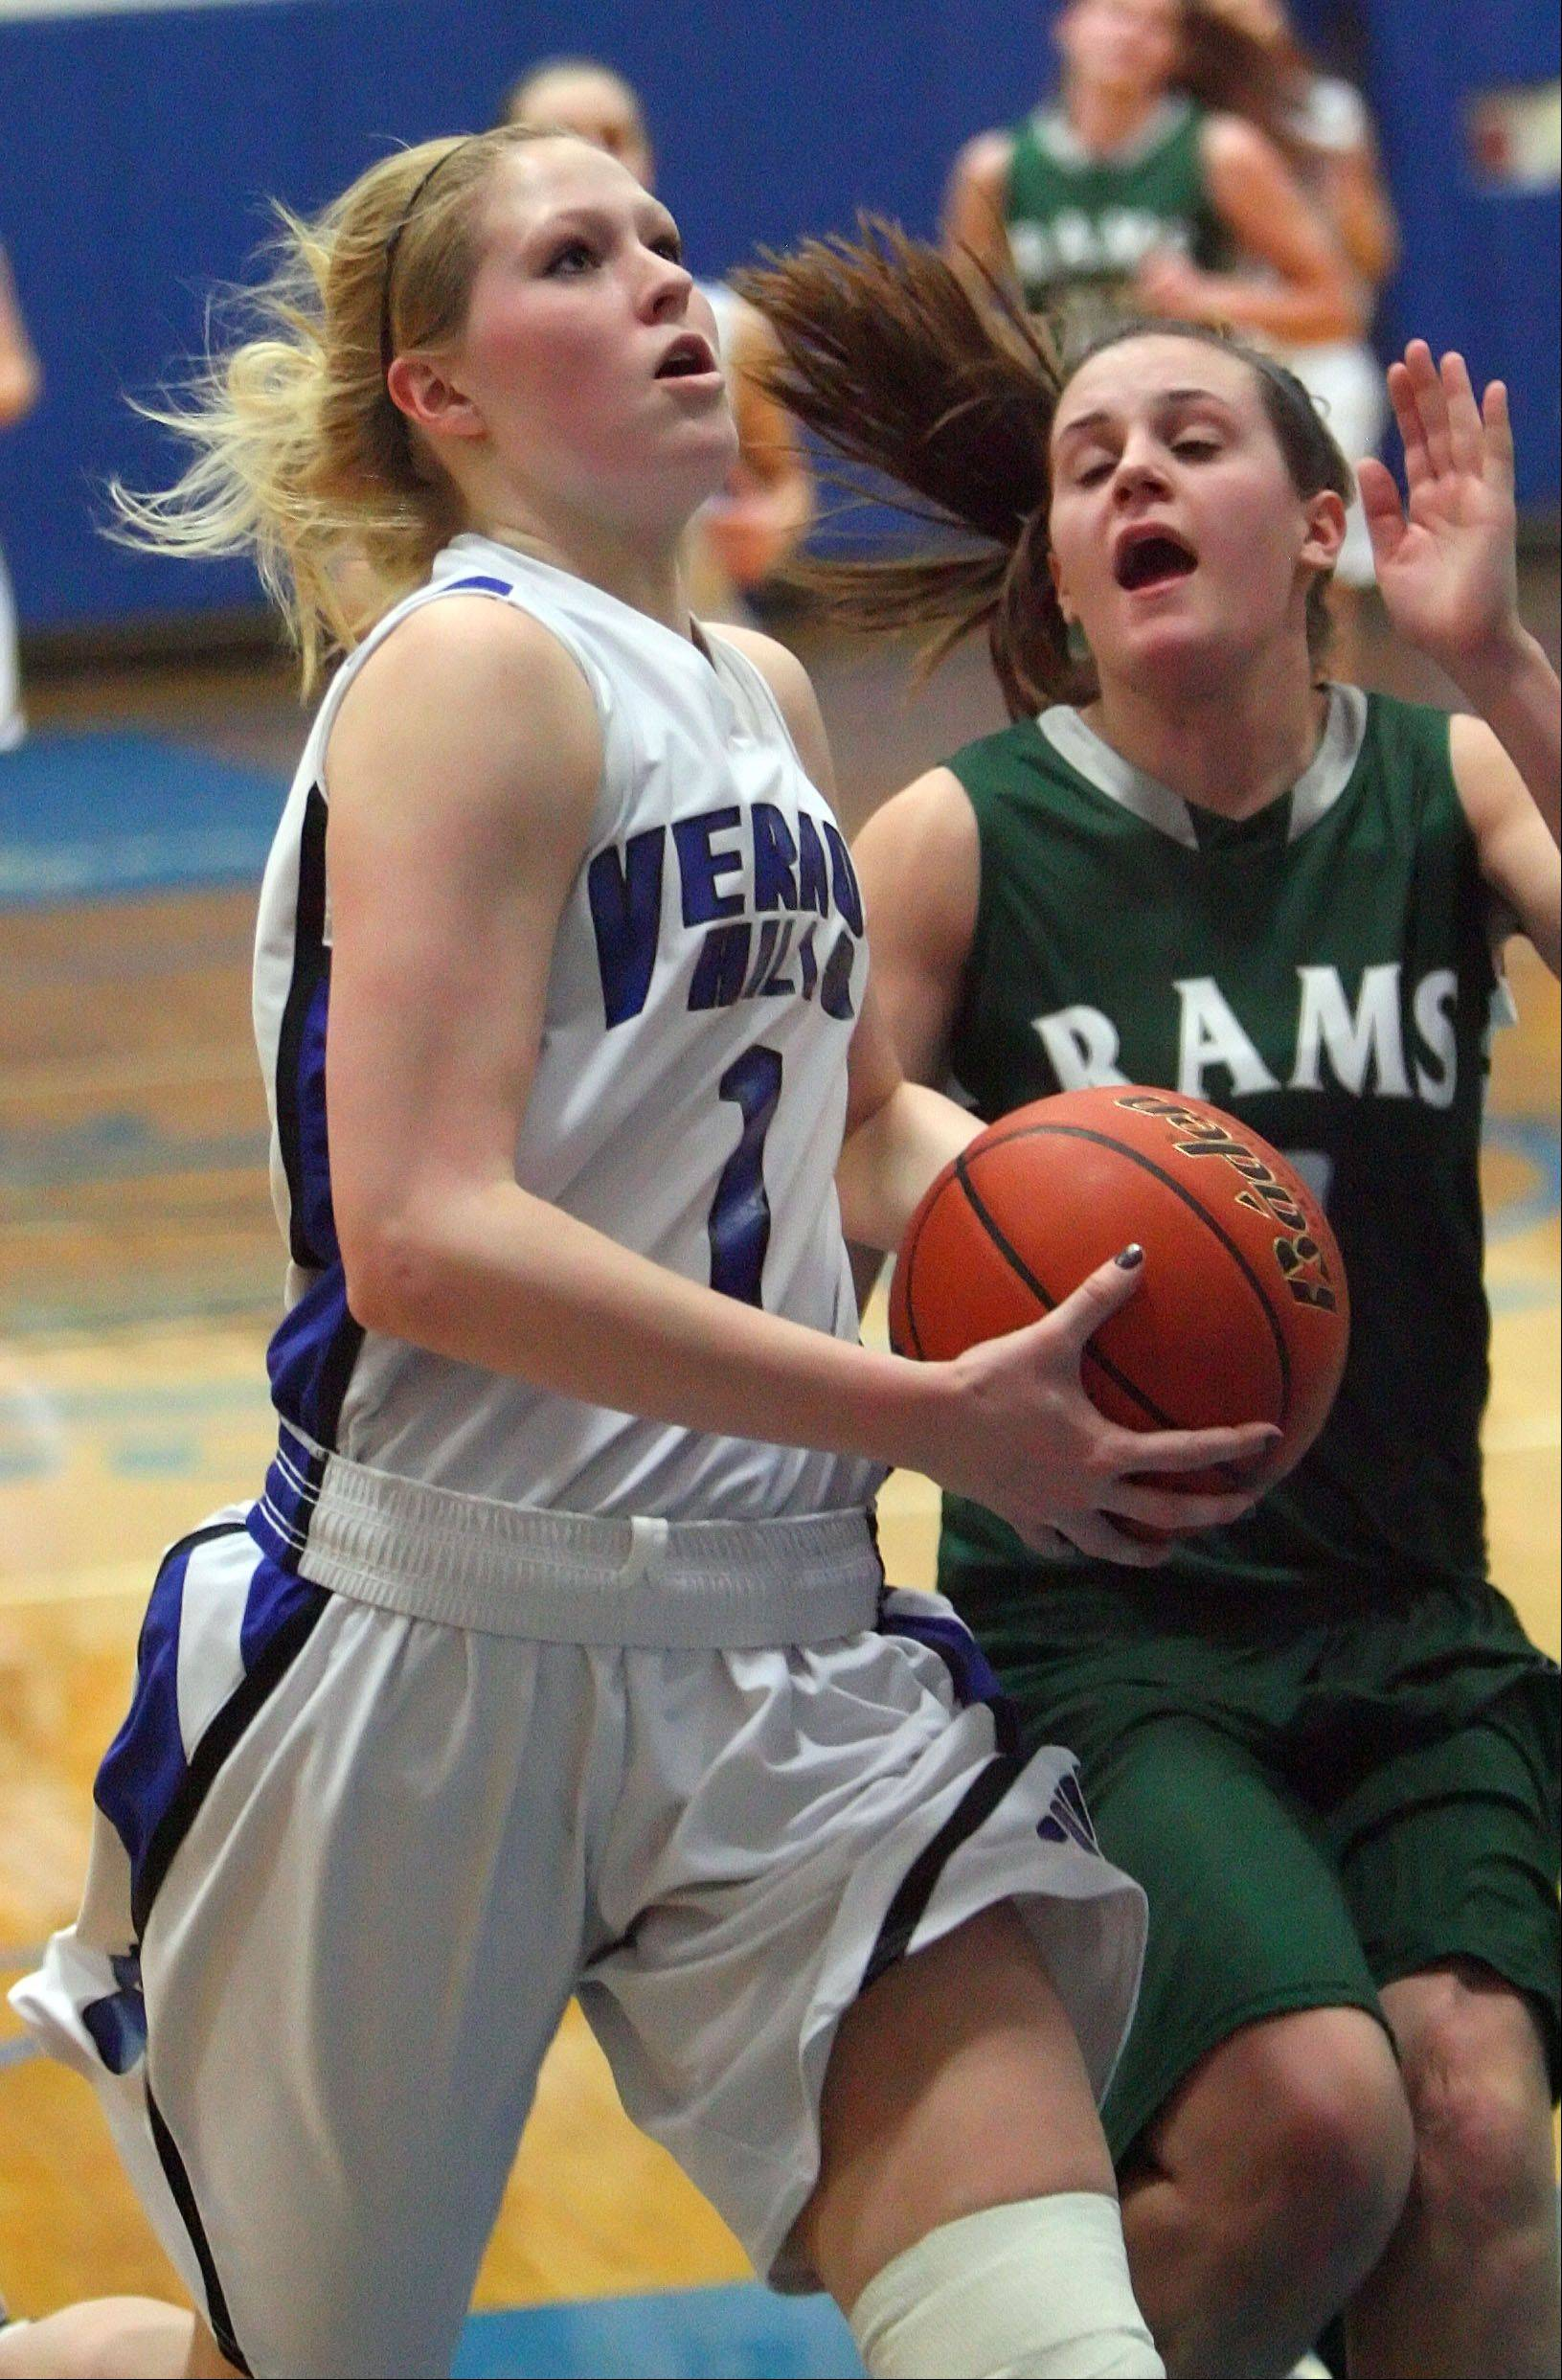 Vernon Hills' Sydney Smith, left drives on Grayslake Central's Savannah Mudd during Class 3A girls basketball sectional semifinal play at Vernon Hills on Tuesday.